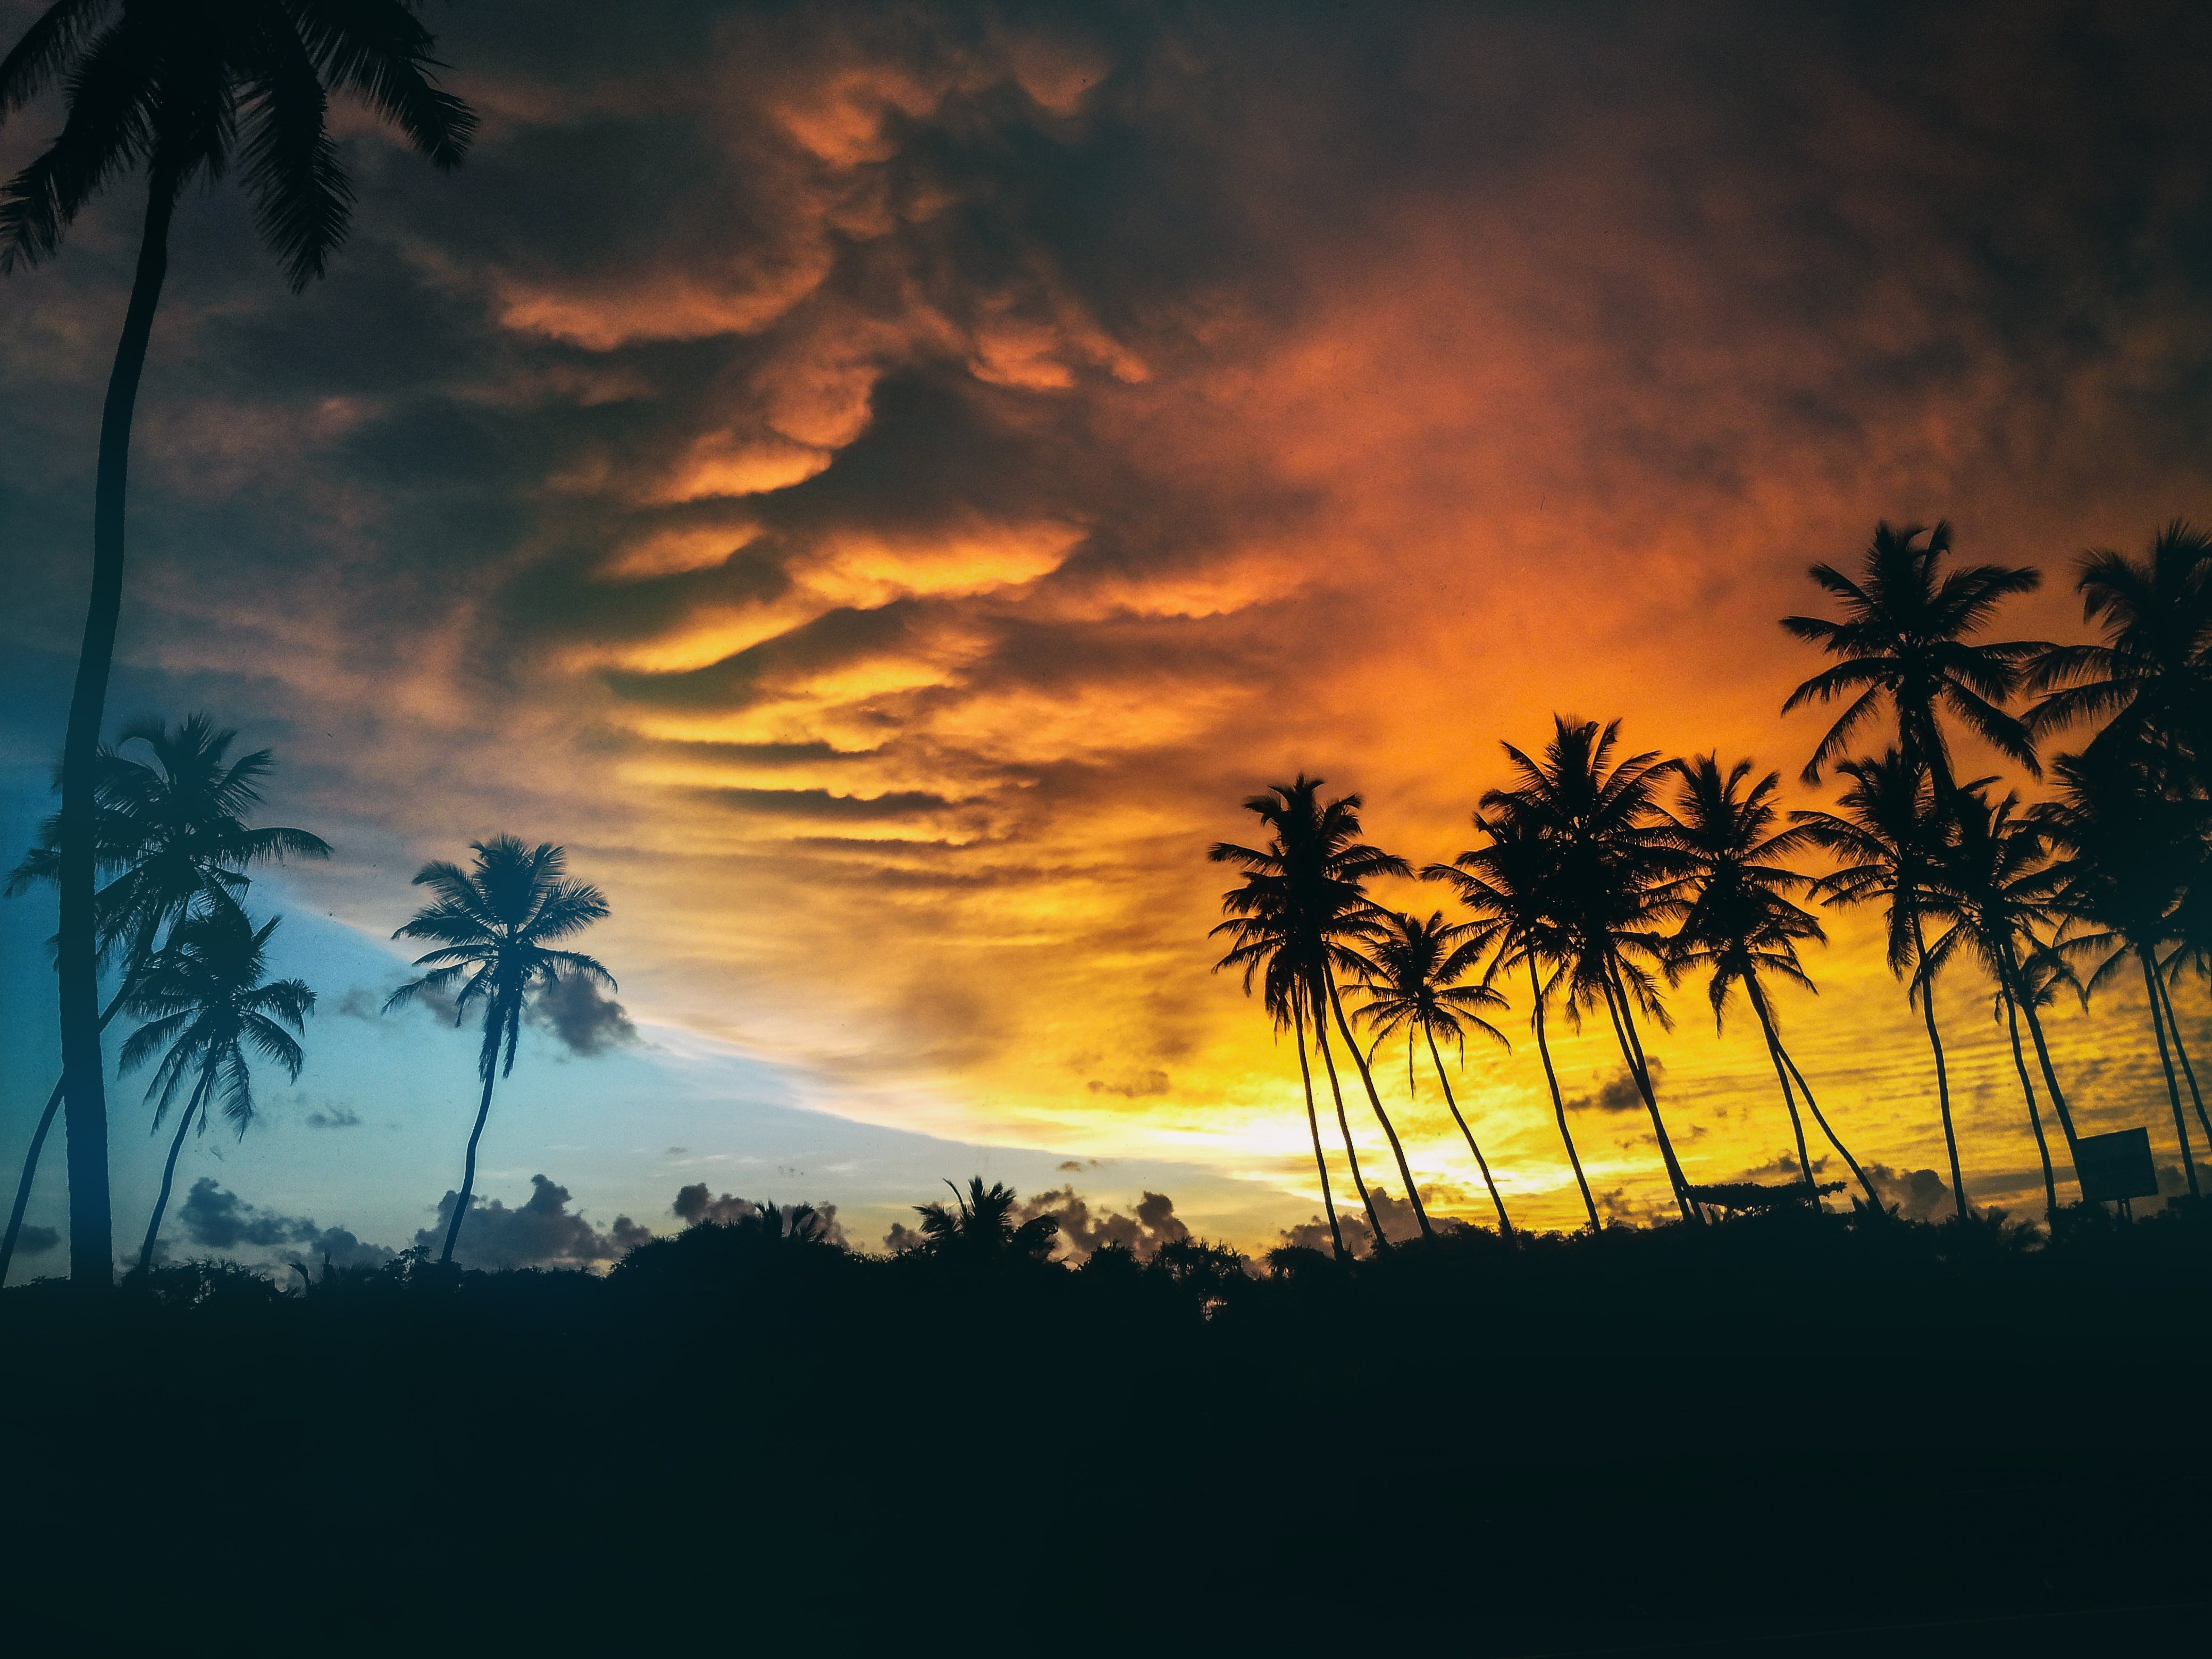 Silhouette of Coconut Trees Under Dark Clouds during Golden Hours